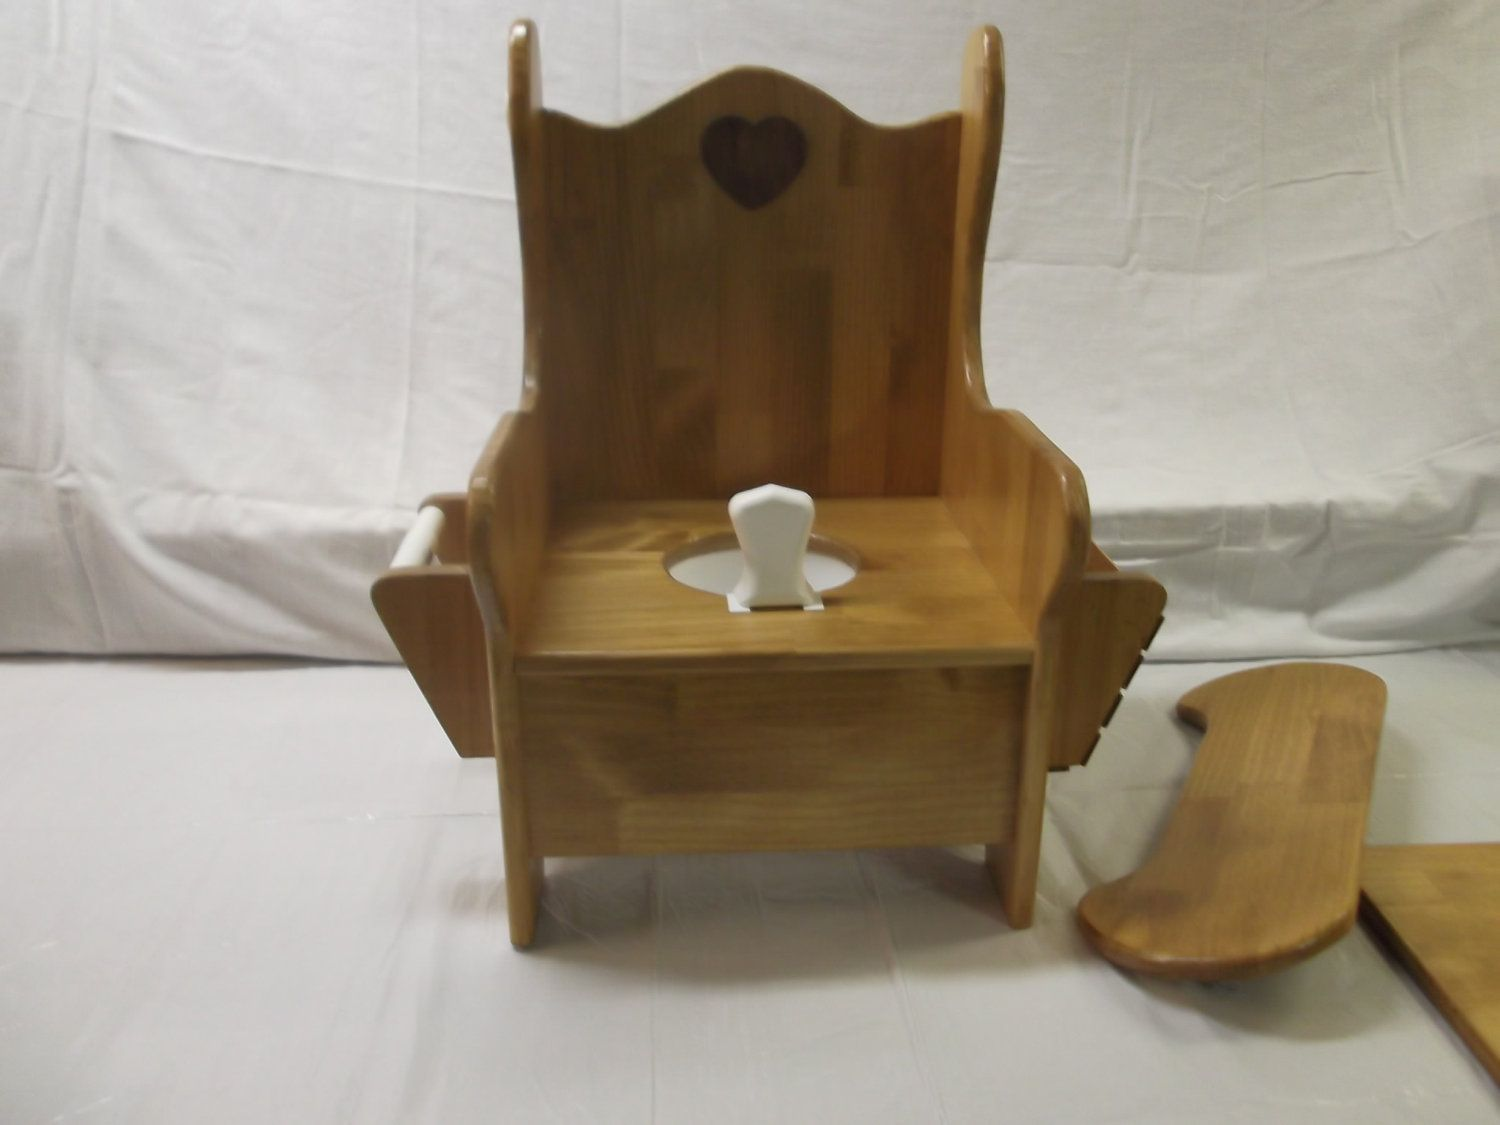 wooden potty training chair wheel images large w tray tp holder and book rack home